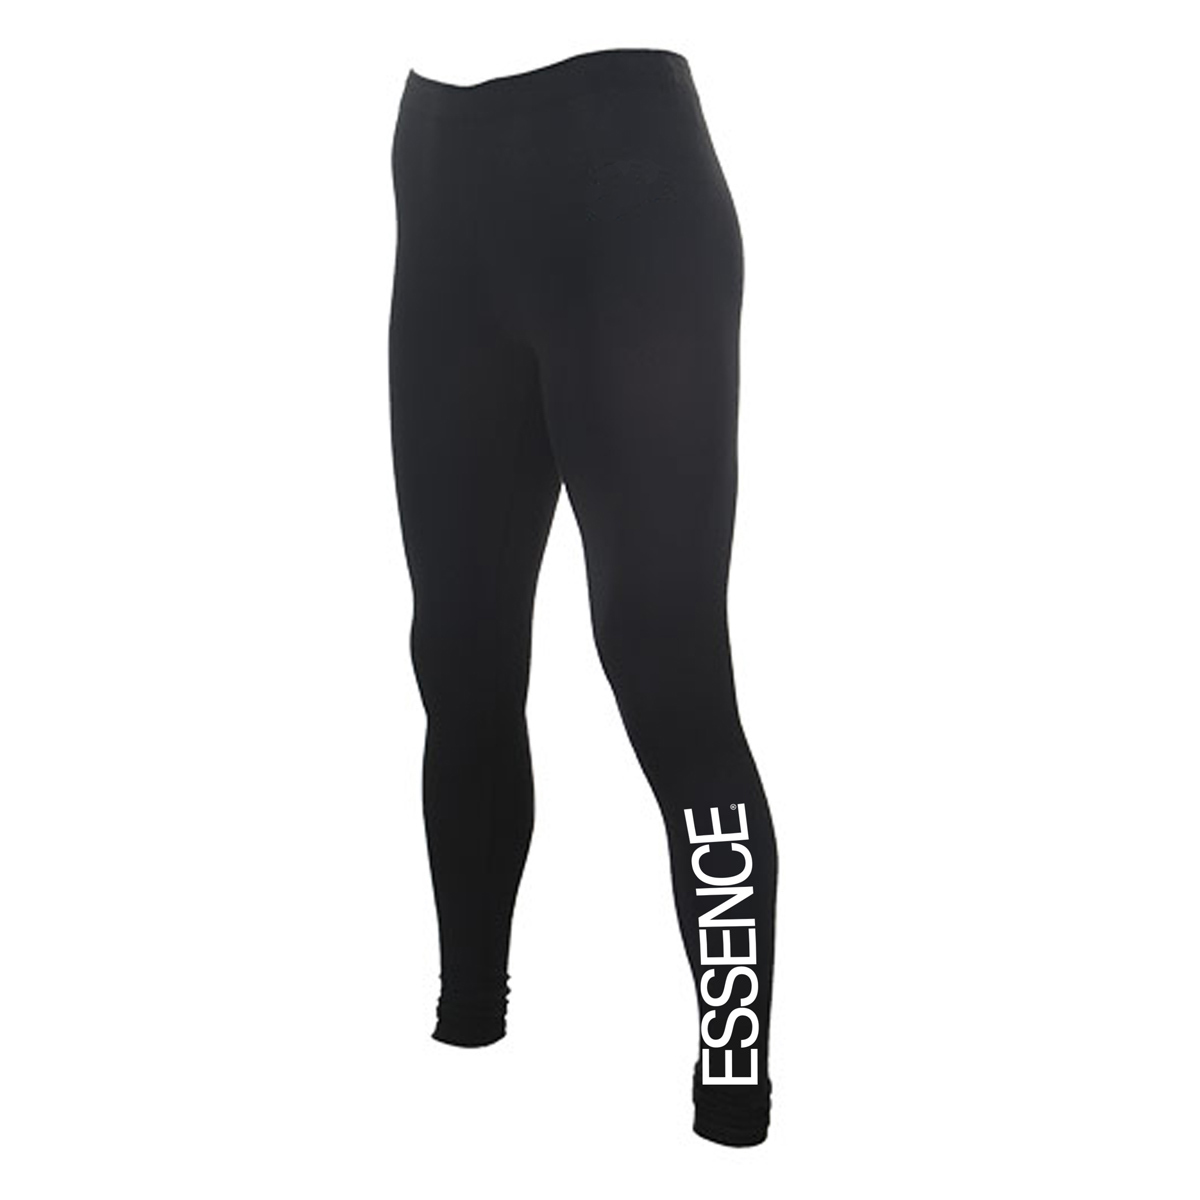 Women's Leggings with Essence Logo